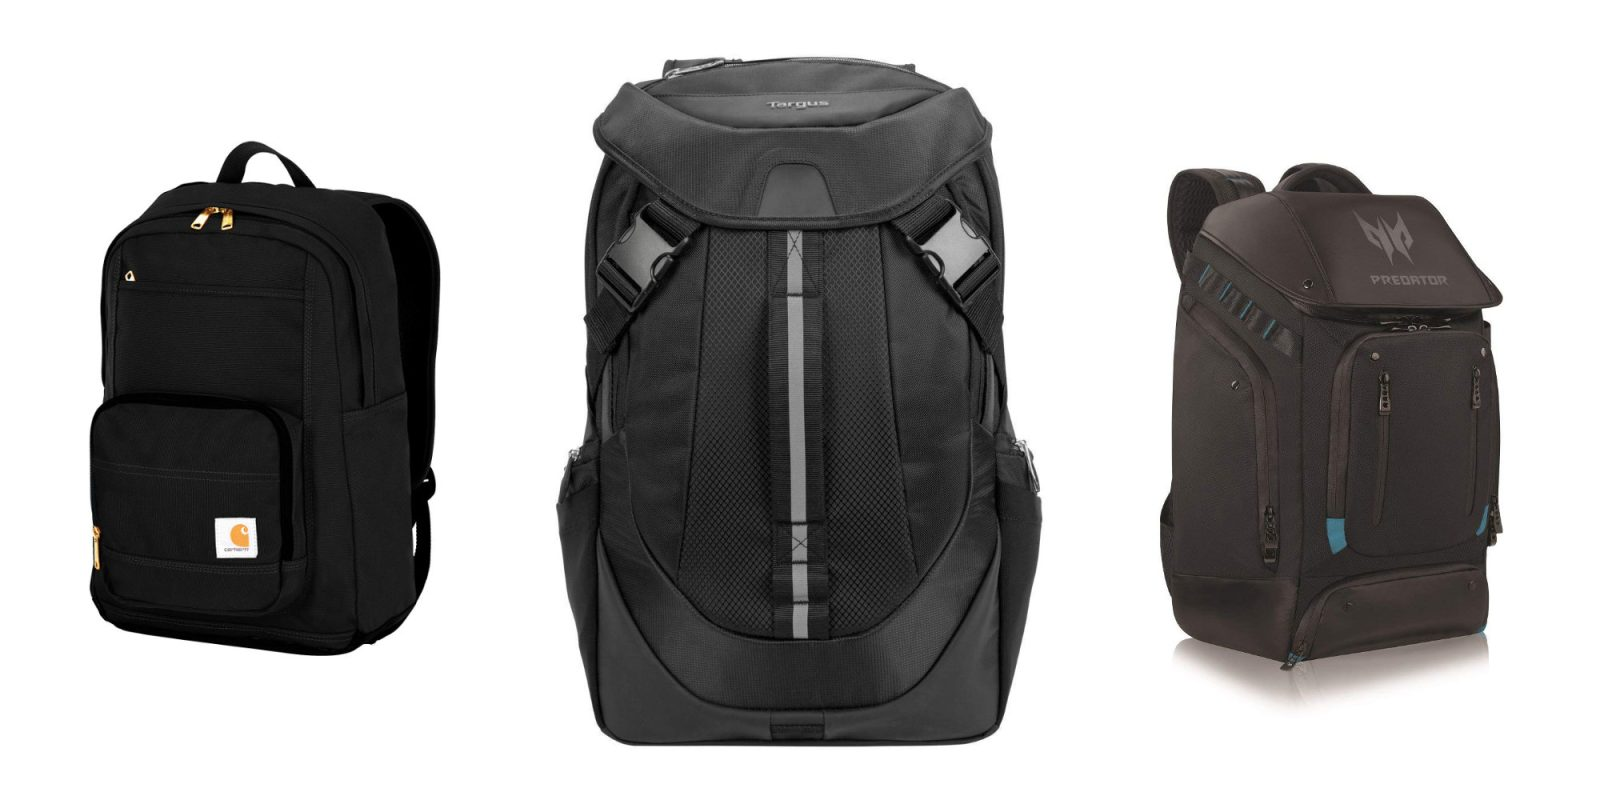 Amazon's MacBook backpack sale has Targus, Carhartt, and Acer priced from $39